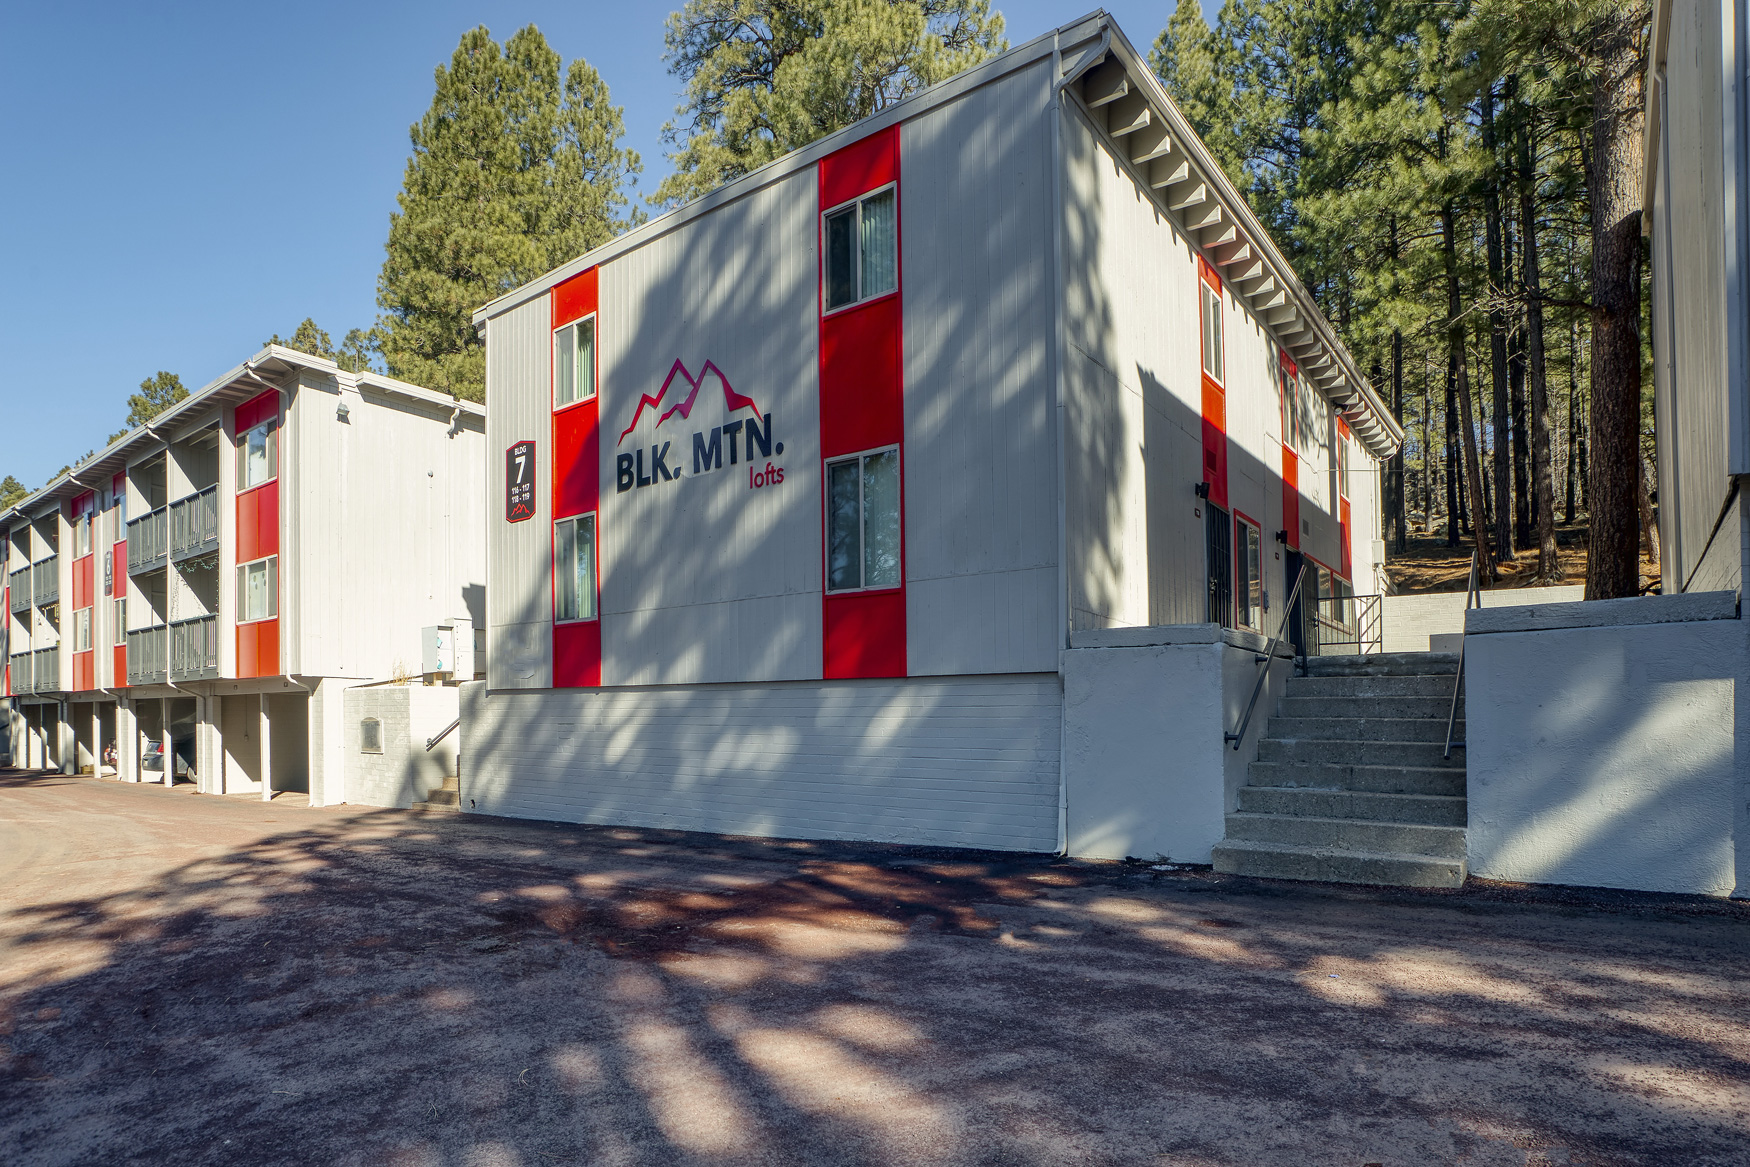 Centrally Located Apartments in Flagstaff at Blk. Mtn. Lofts Apartments in Flagstaff, Arizona